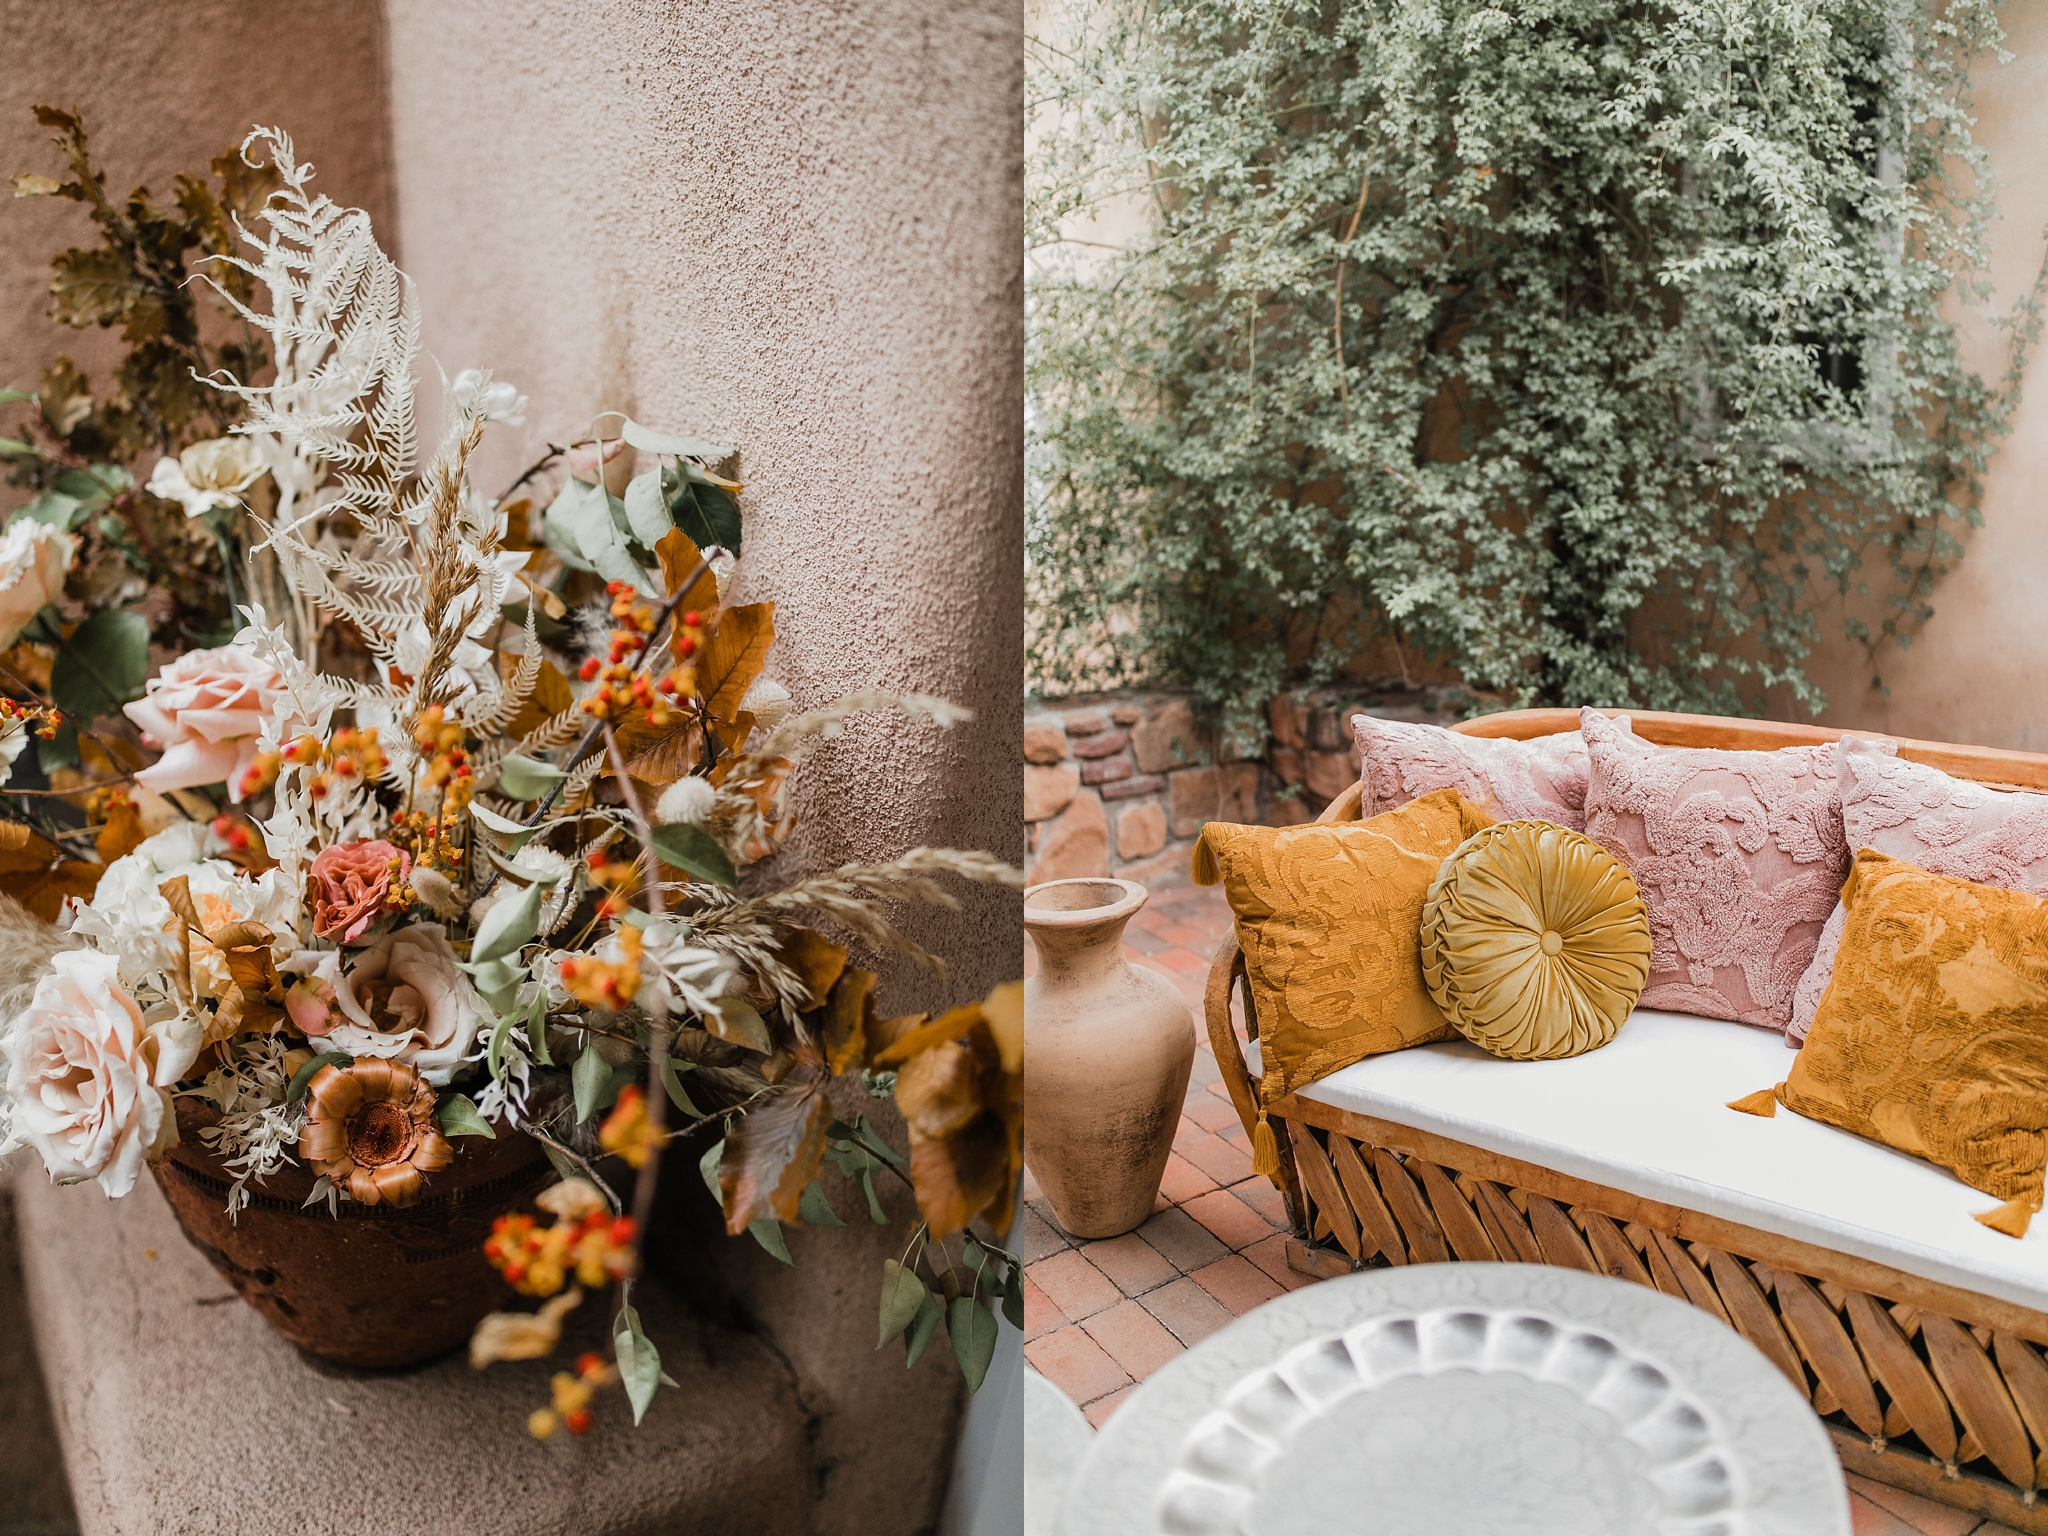 Alicia+lucia+photography+-+albuquerque+wedding+photographer+-+santa+fe+wedding+photography+-+new+mexico+wedding+photographer+-+new+mexico+wedding+-+albuquerque+wedding+-+rocky+mountain+bride+-+los+poblanos+wedding_0051.jpg